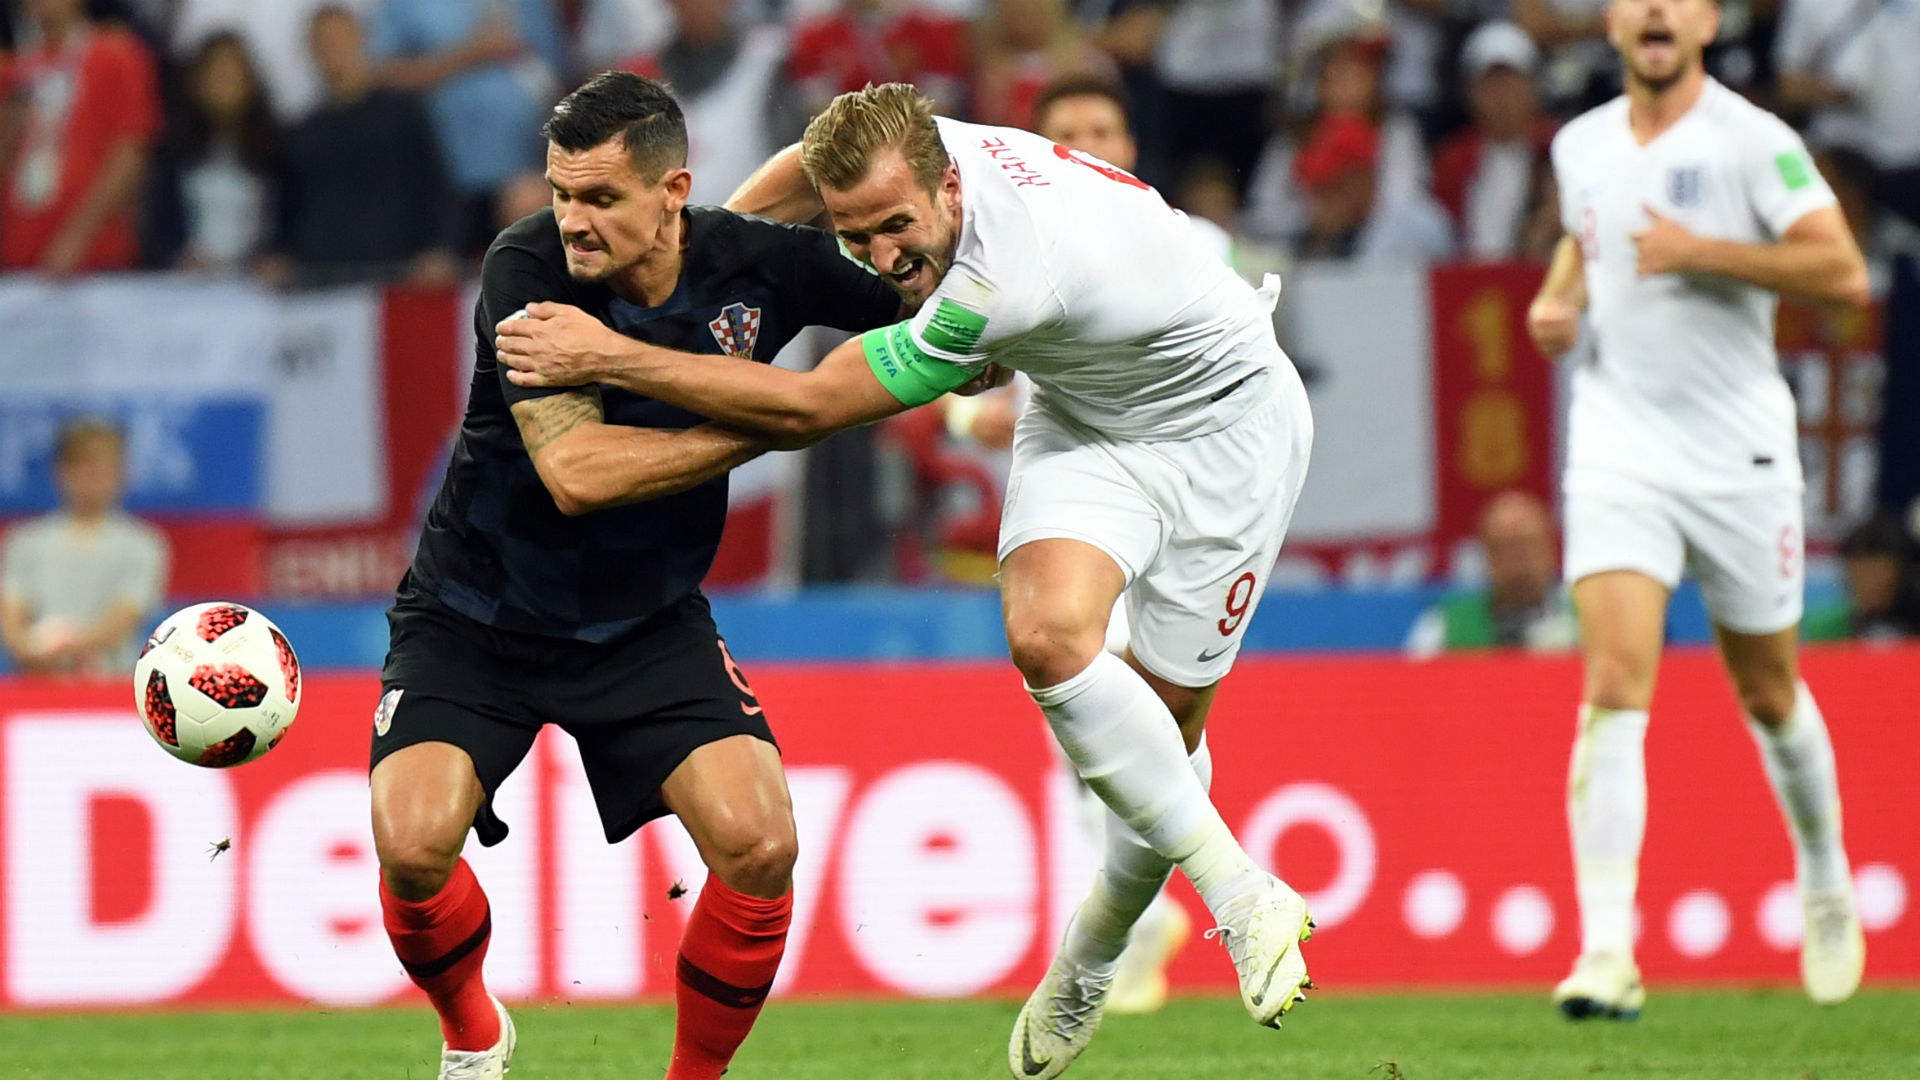 croatia england - dejan lovren harry kane - world cup - 11072018